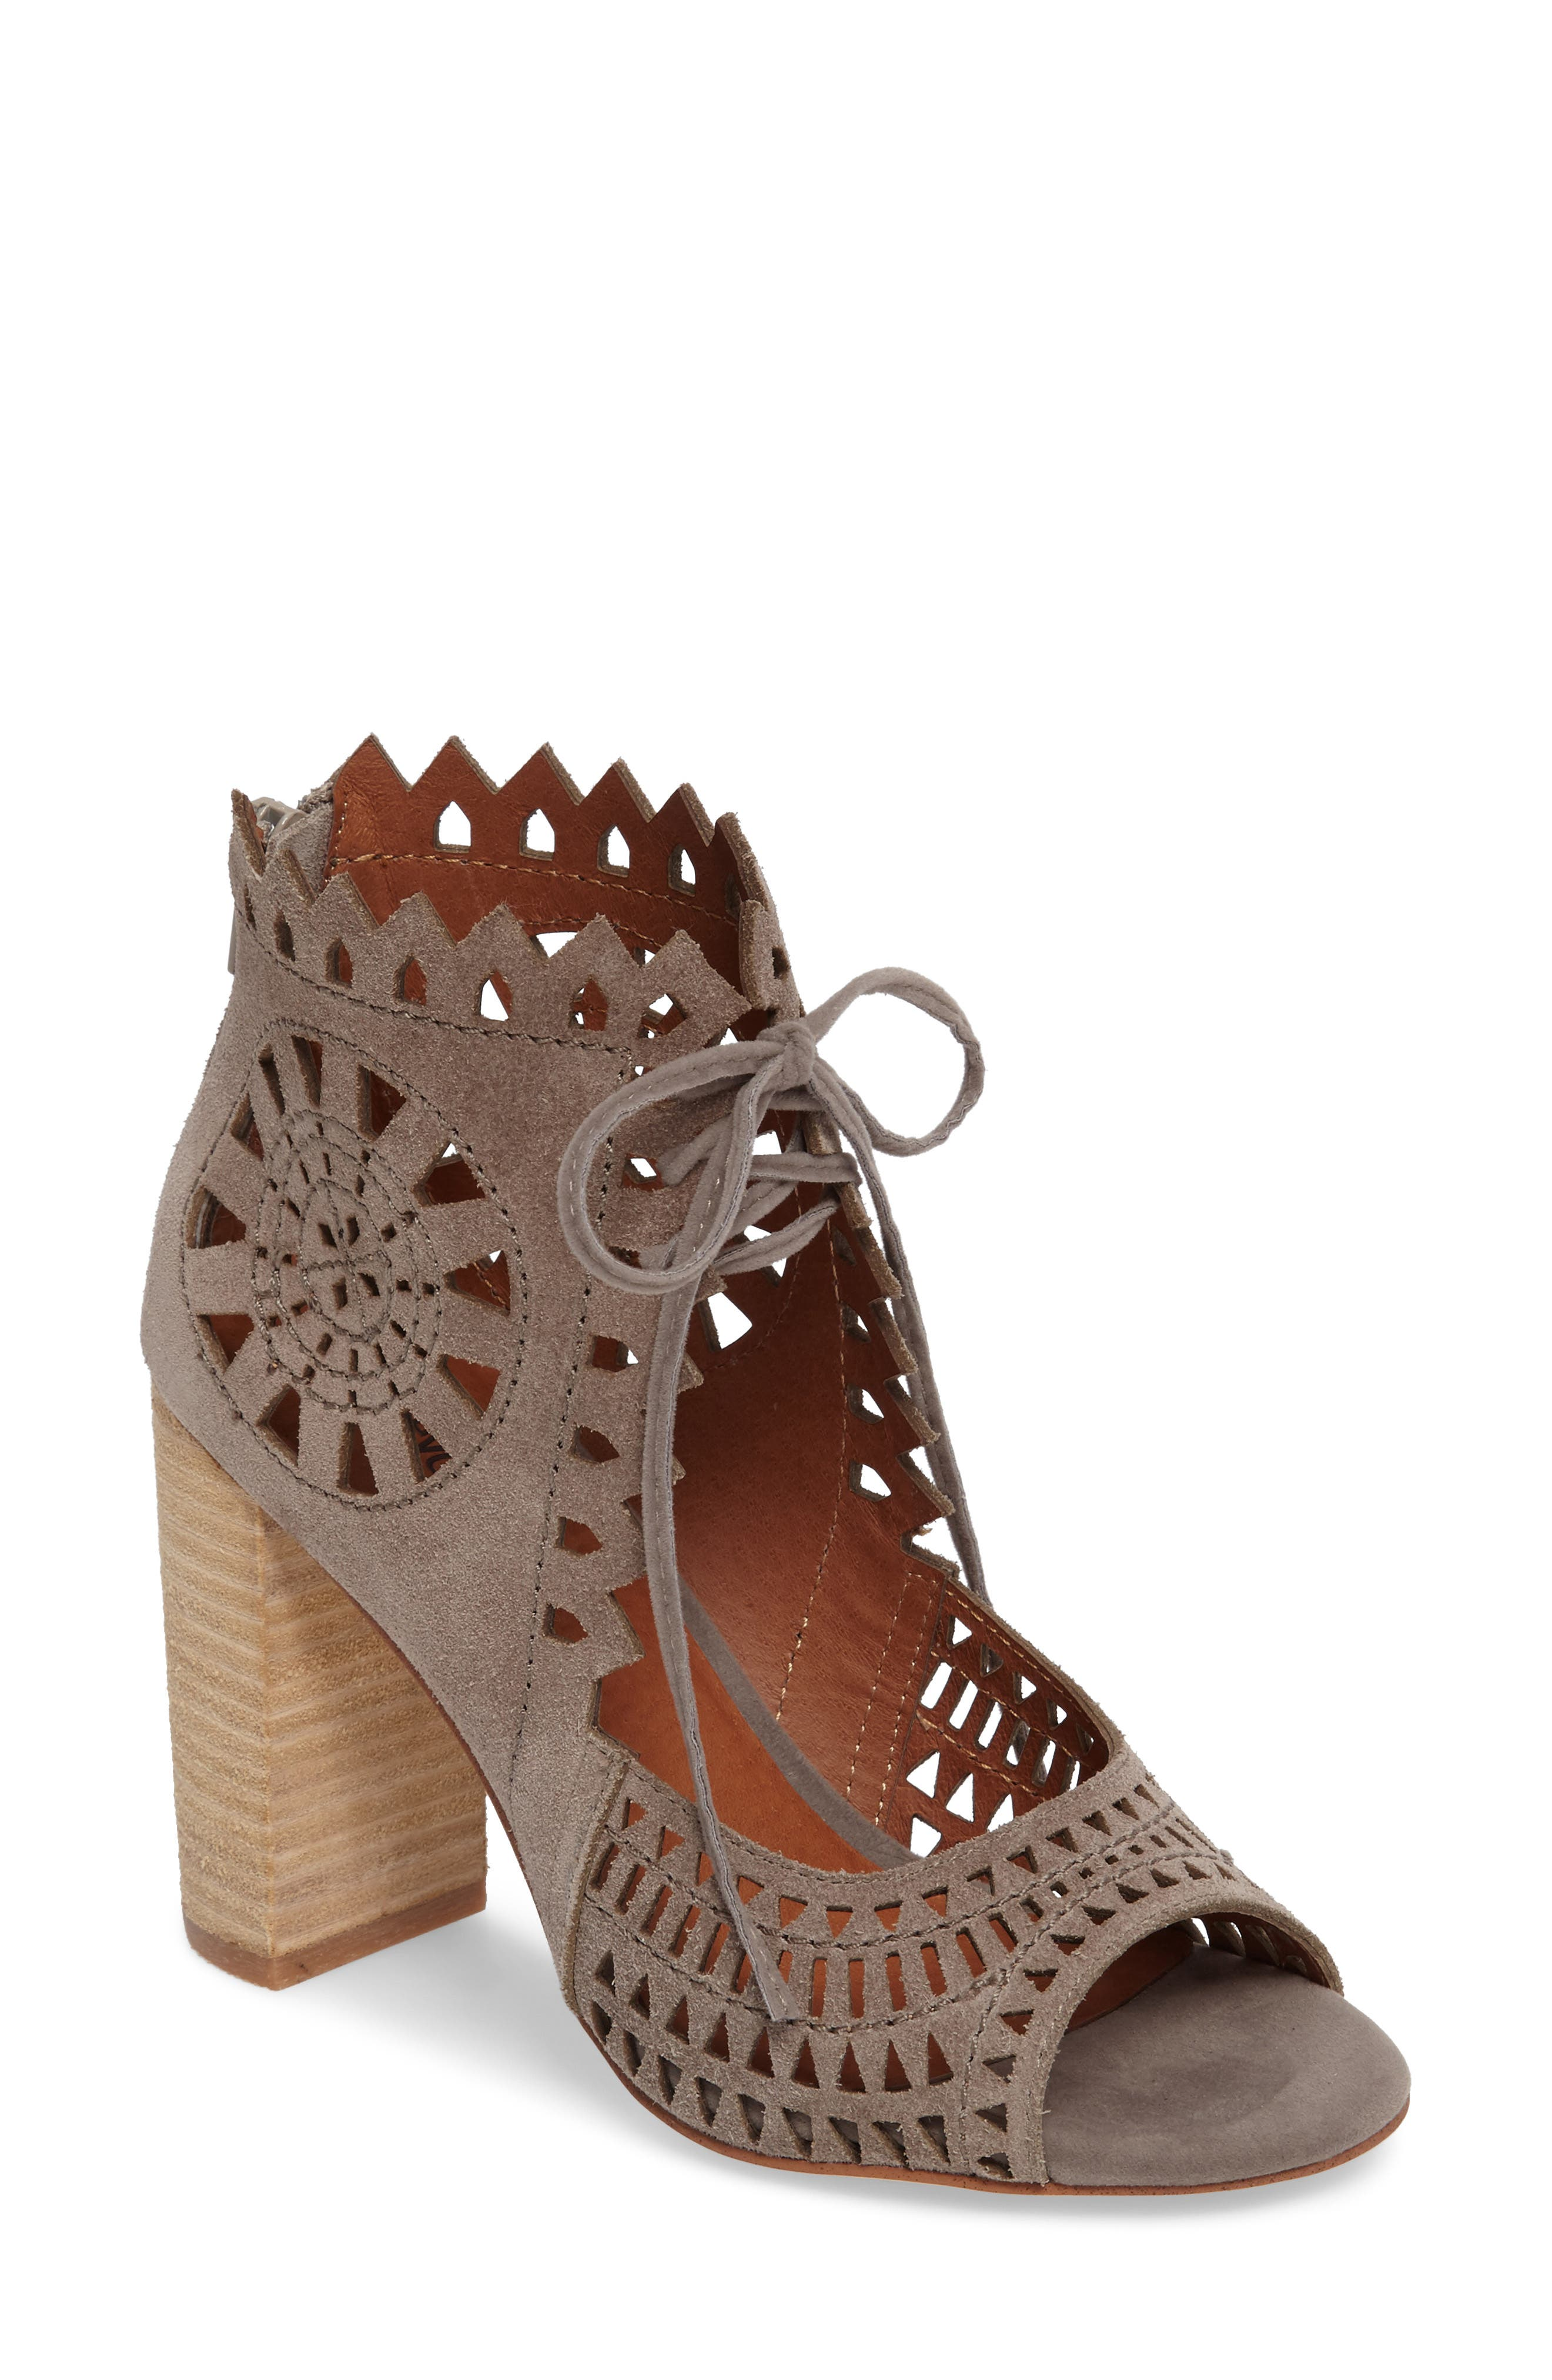 JEFFREY CAMPBELL Cordia Perforated Bootie Sandal